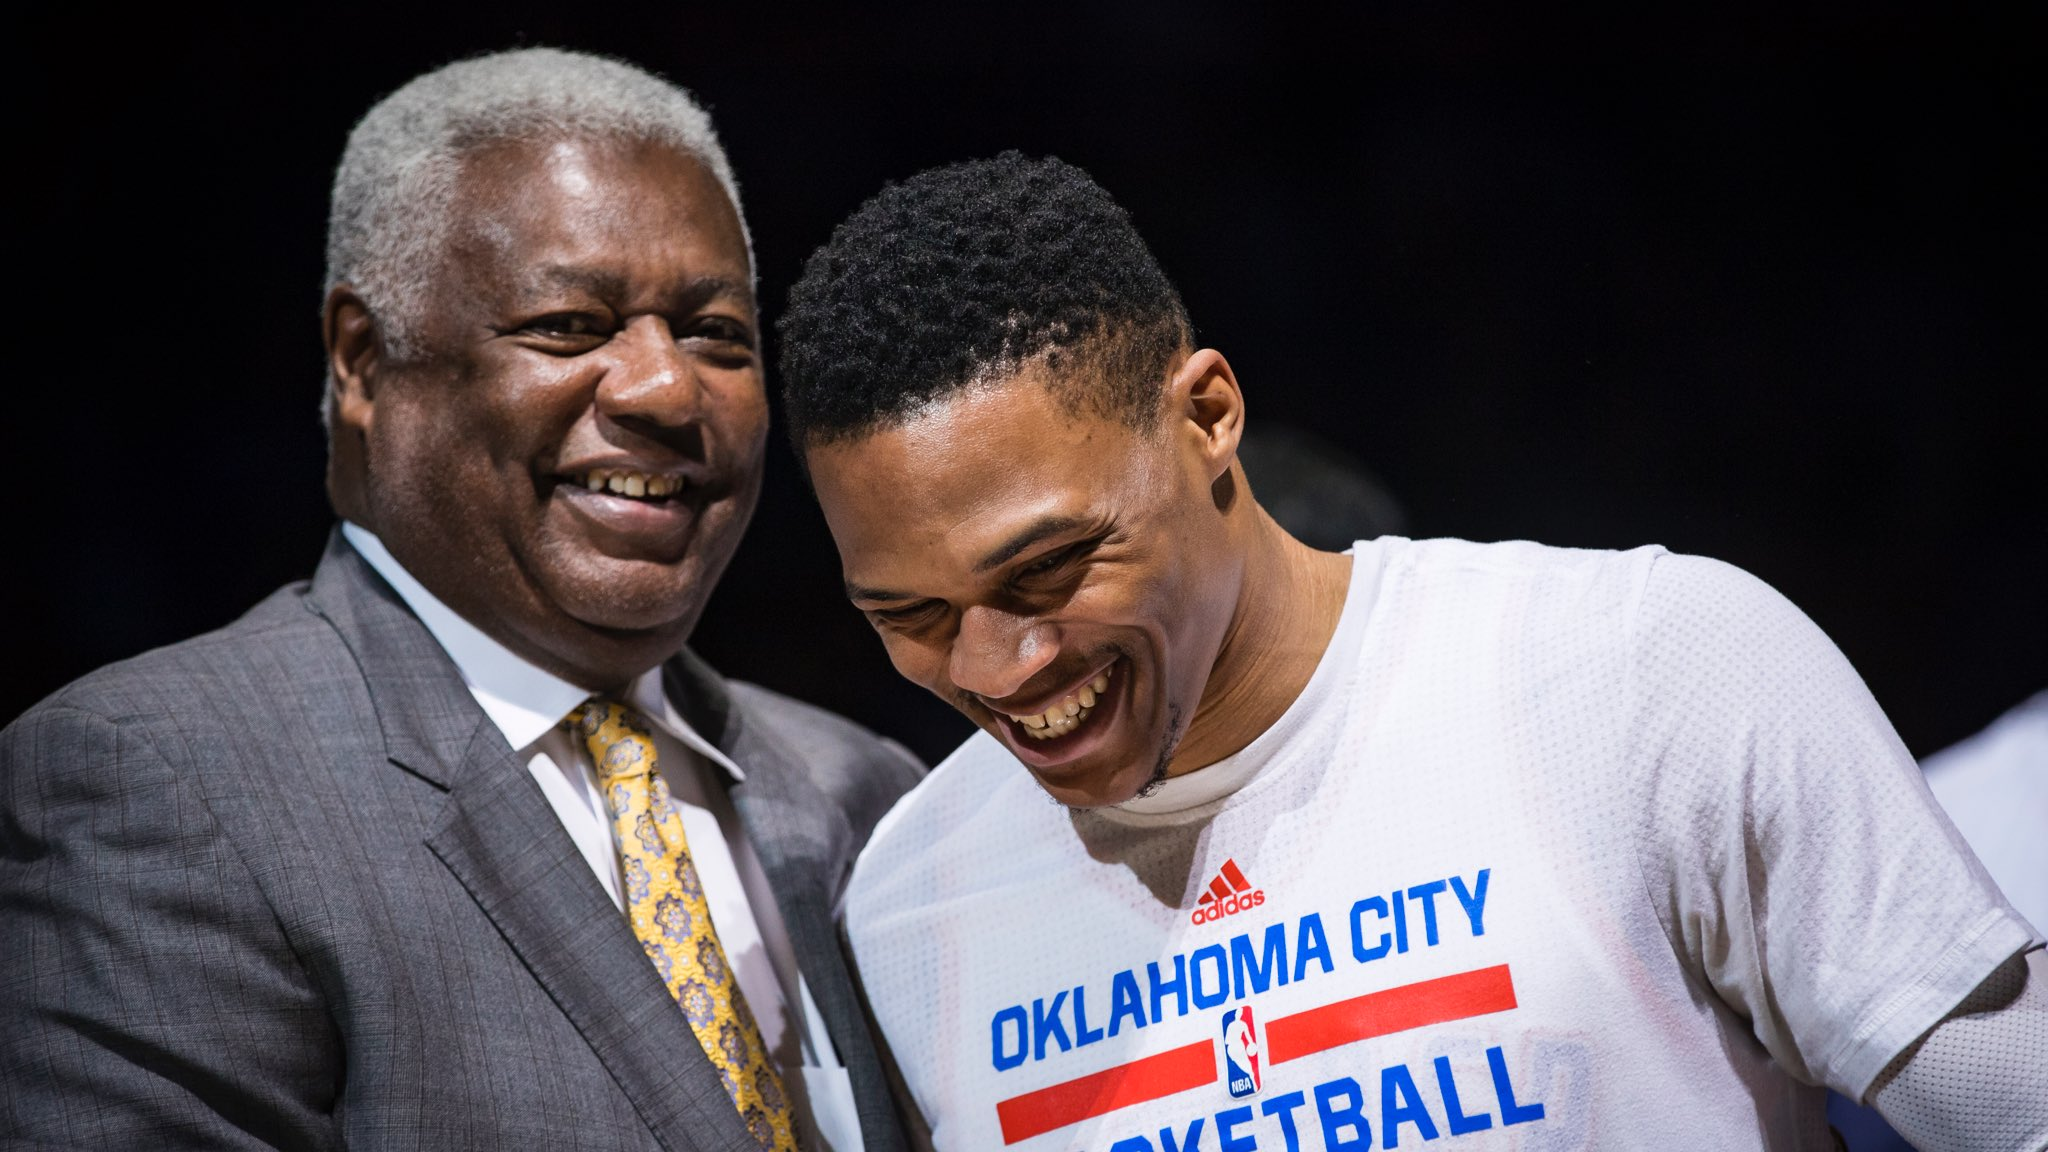 Oscar Robertson Russell Westbrook Mvp Triple Double likewise Mvp 1718 Aspirantes Reales Y Potenciales as well The Latest West Leads All Star Game 97 92 Halftime together with Kevin Durant Continues Chase 20 Point NBA Record Golden State Warriors Star Ties Michael Jordan in addition Hoop Lore Pics. on oscar robertson on lebron james